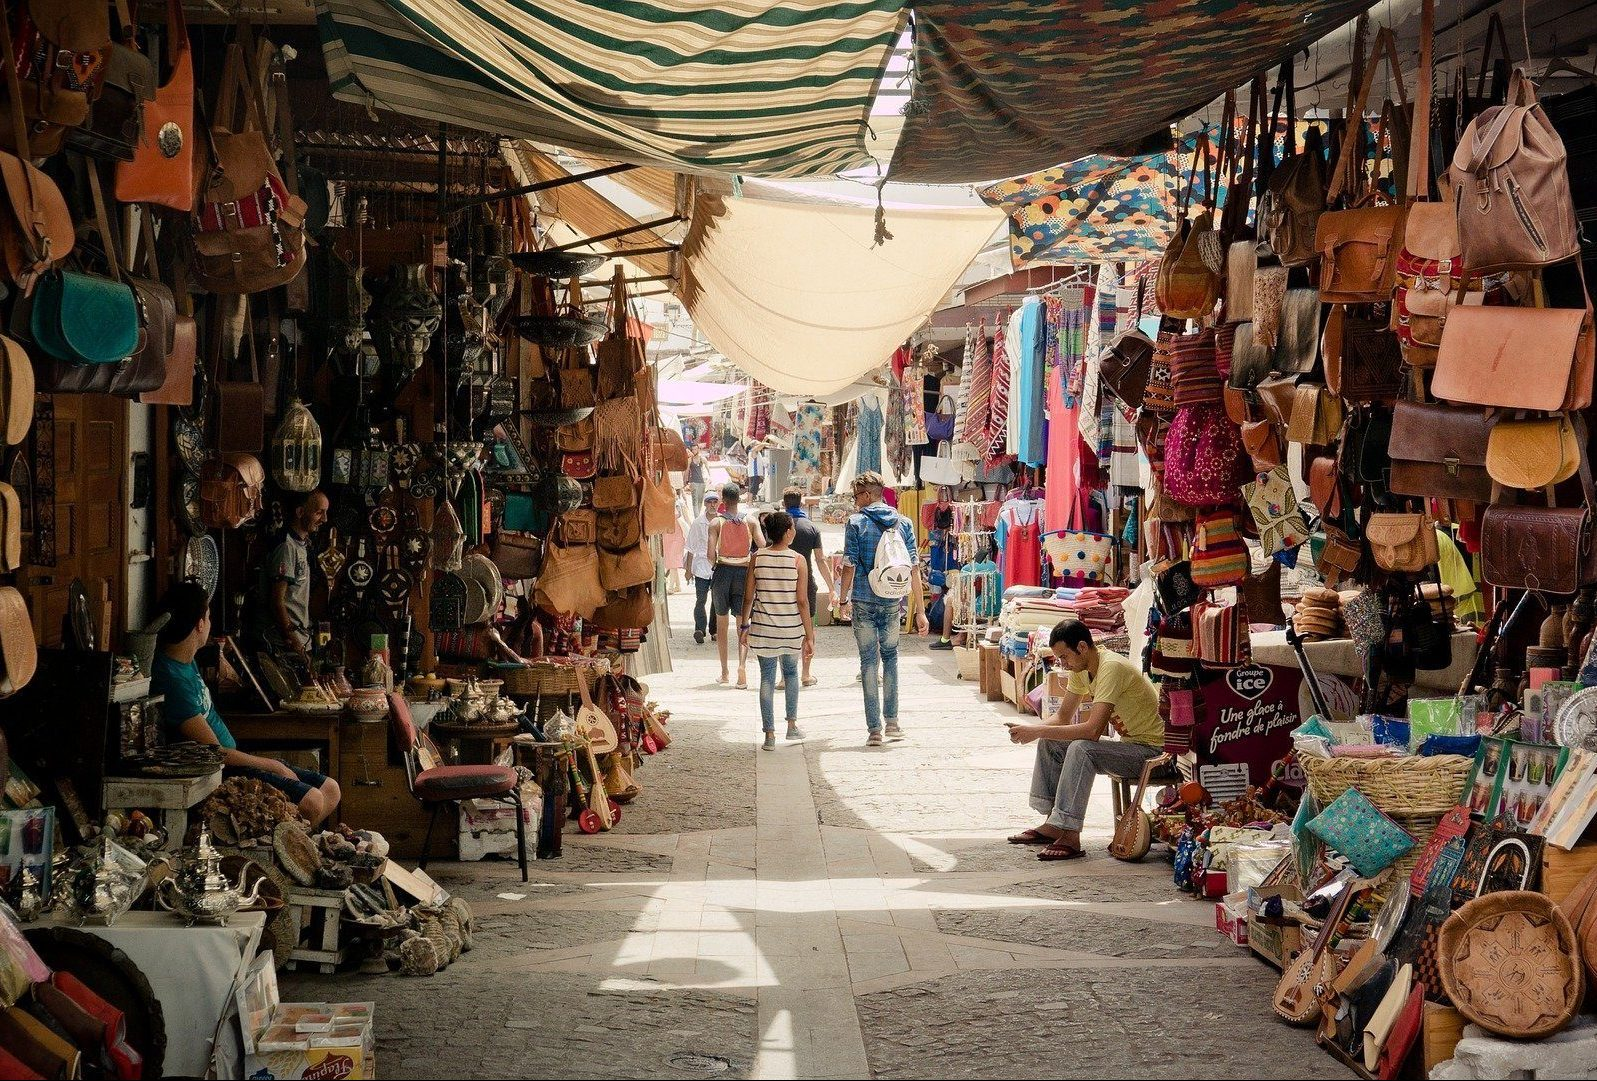 traditional souk in Morocco